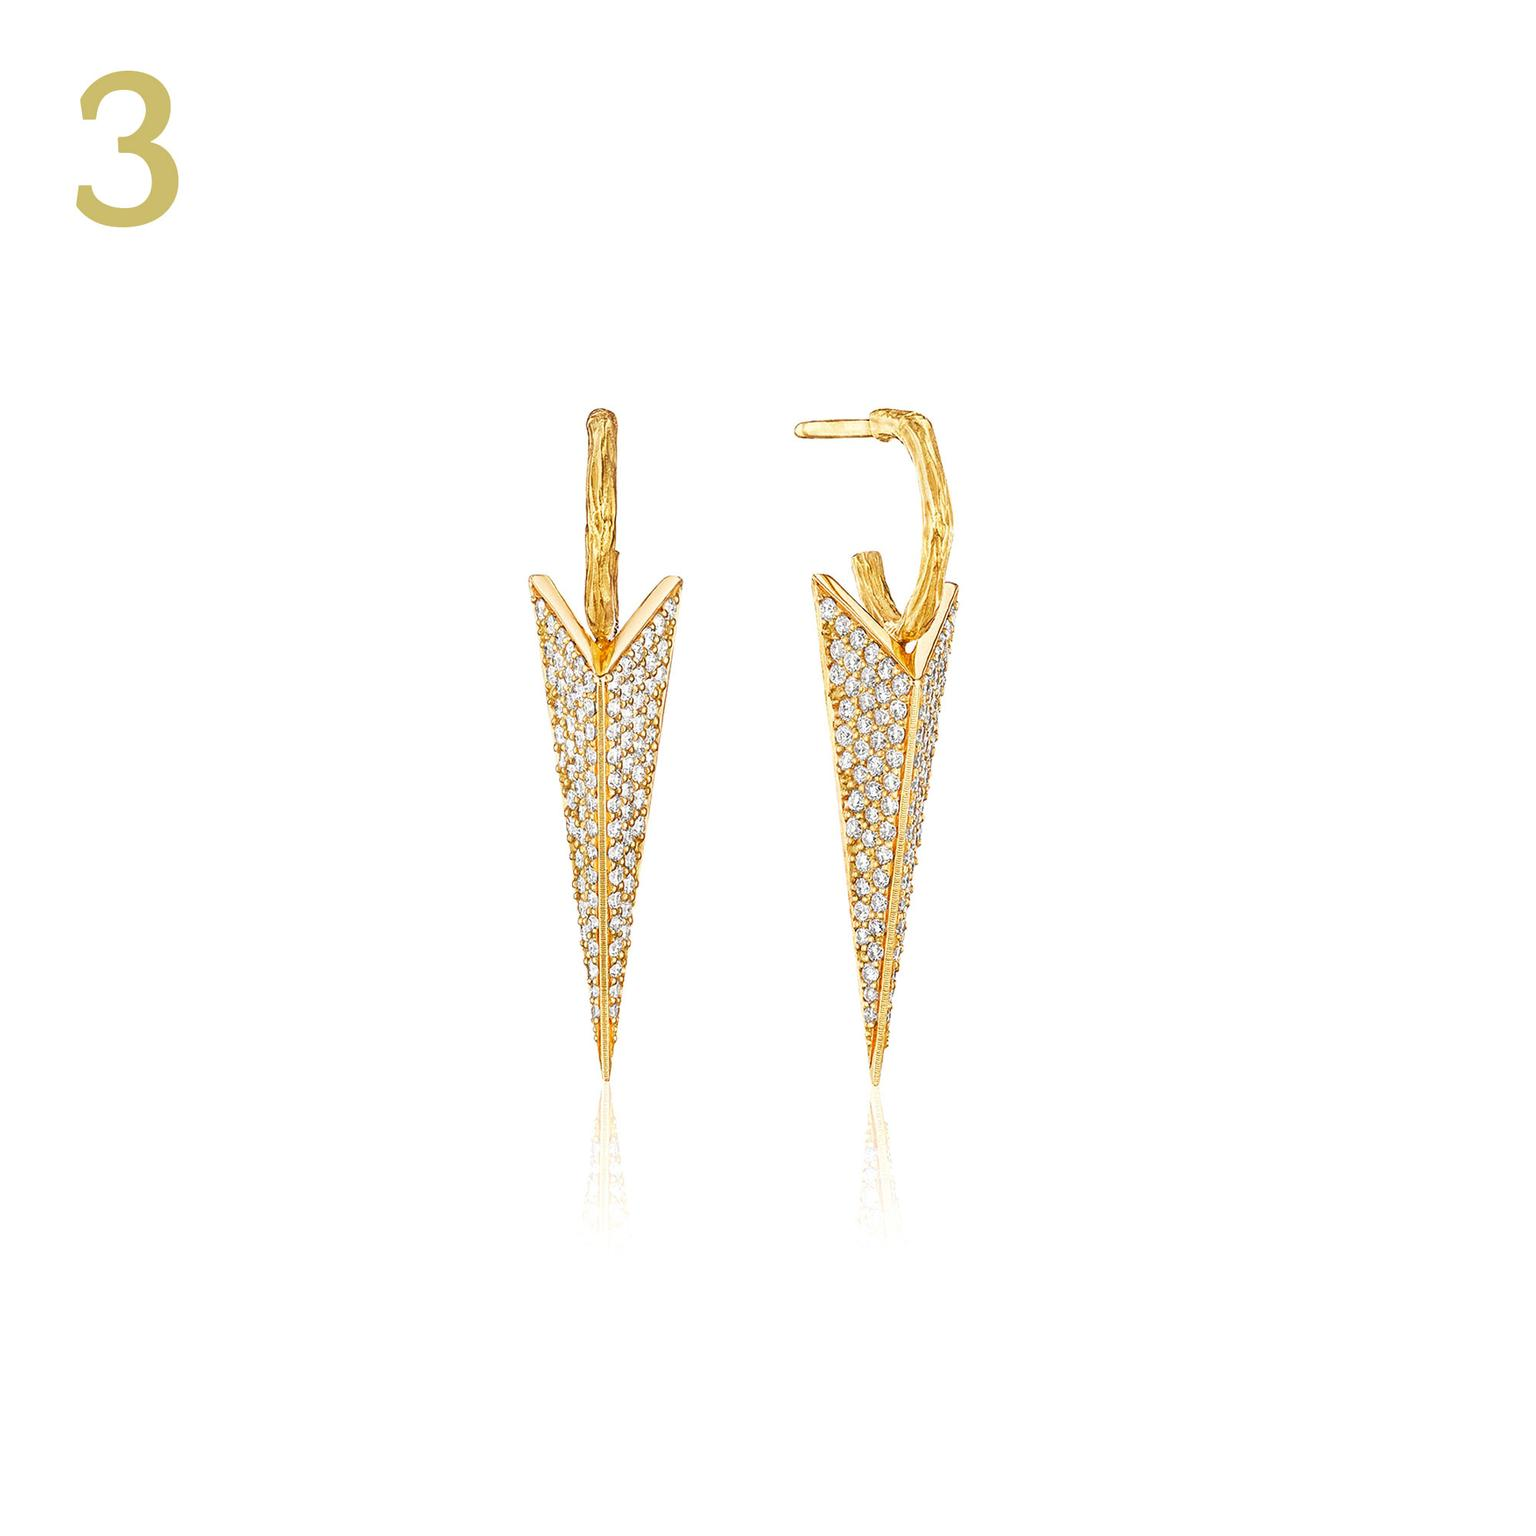 Mimi So Wonderland pavé diamond earrings